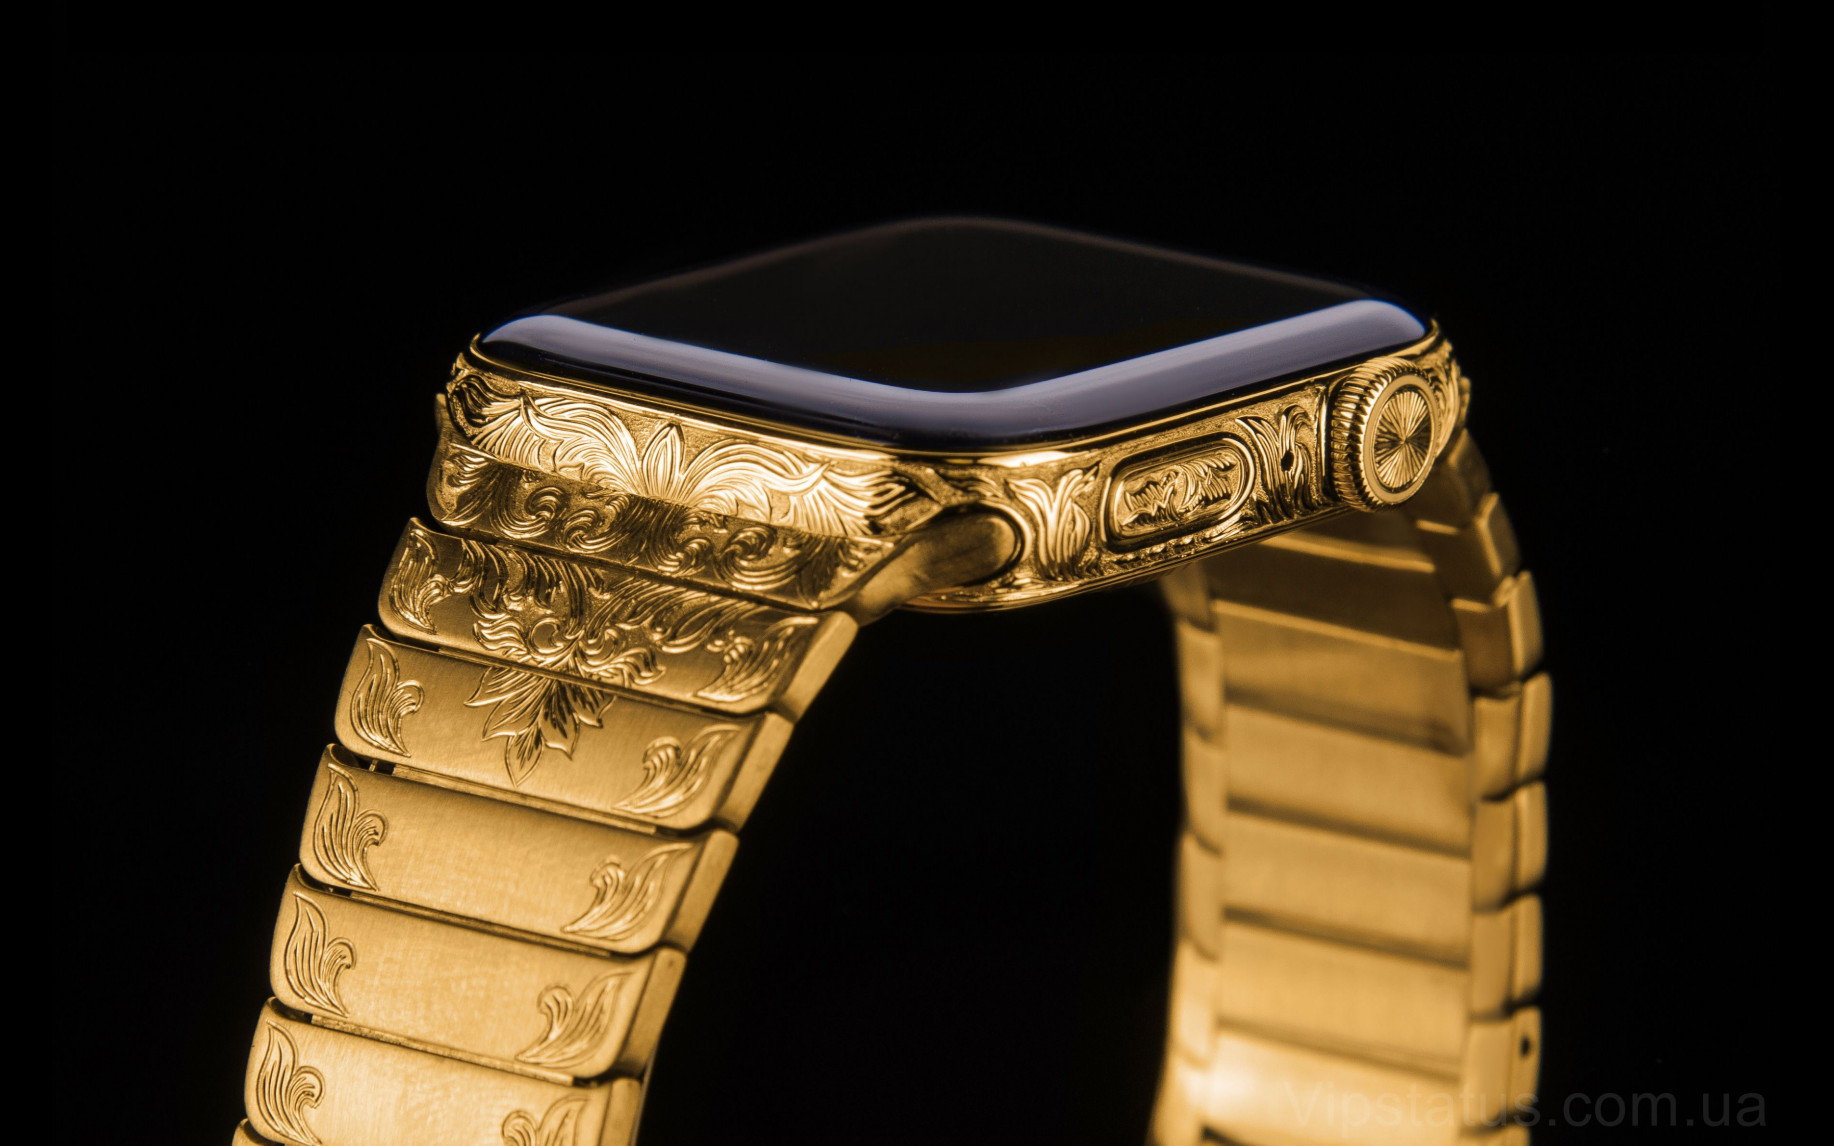 Elite Gold Star Apple Watch 5 Gold Star Apple Watch 5 image 2